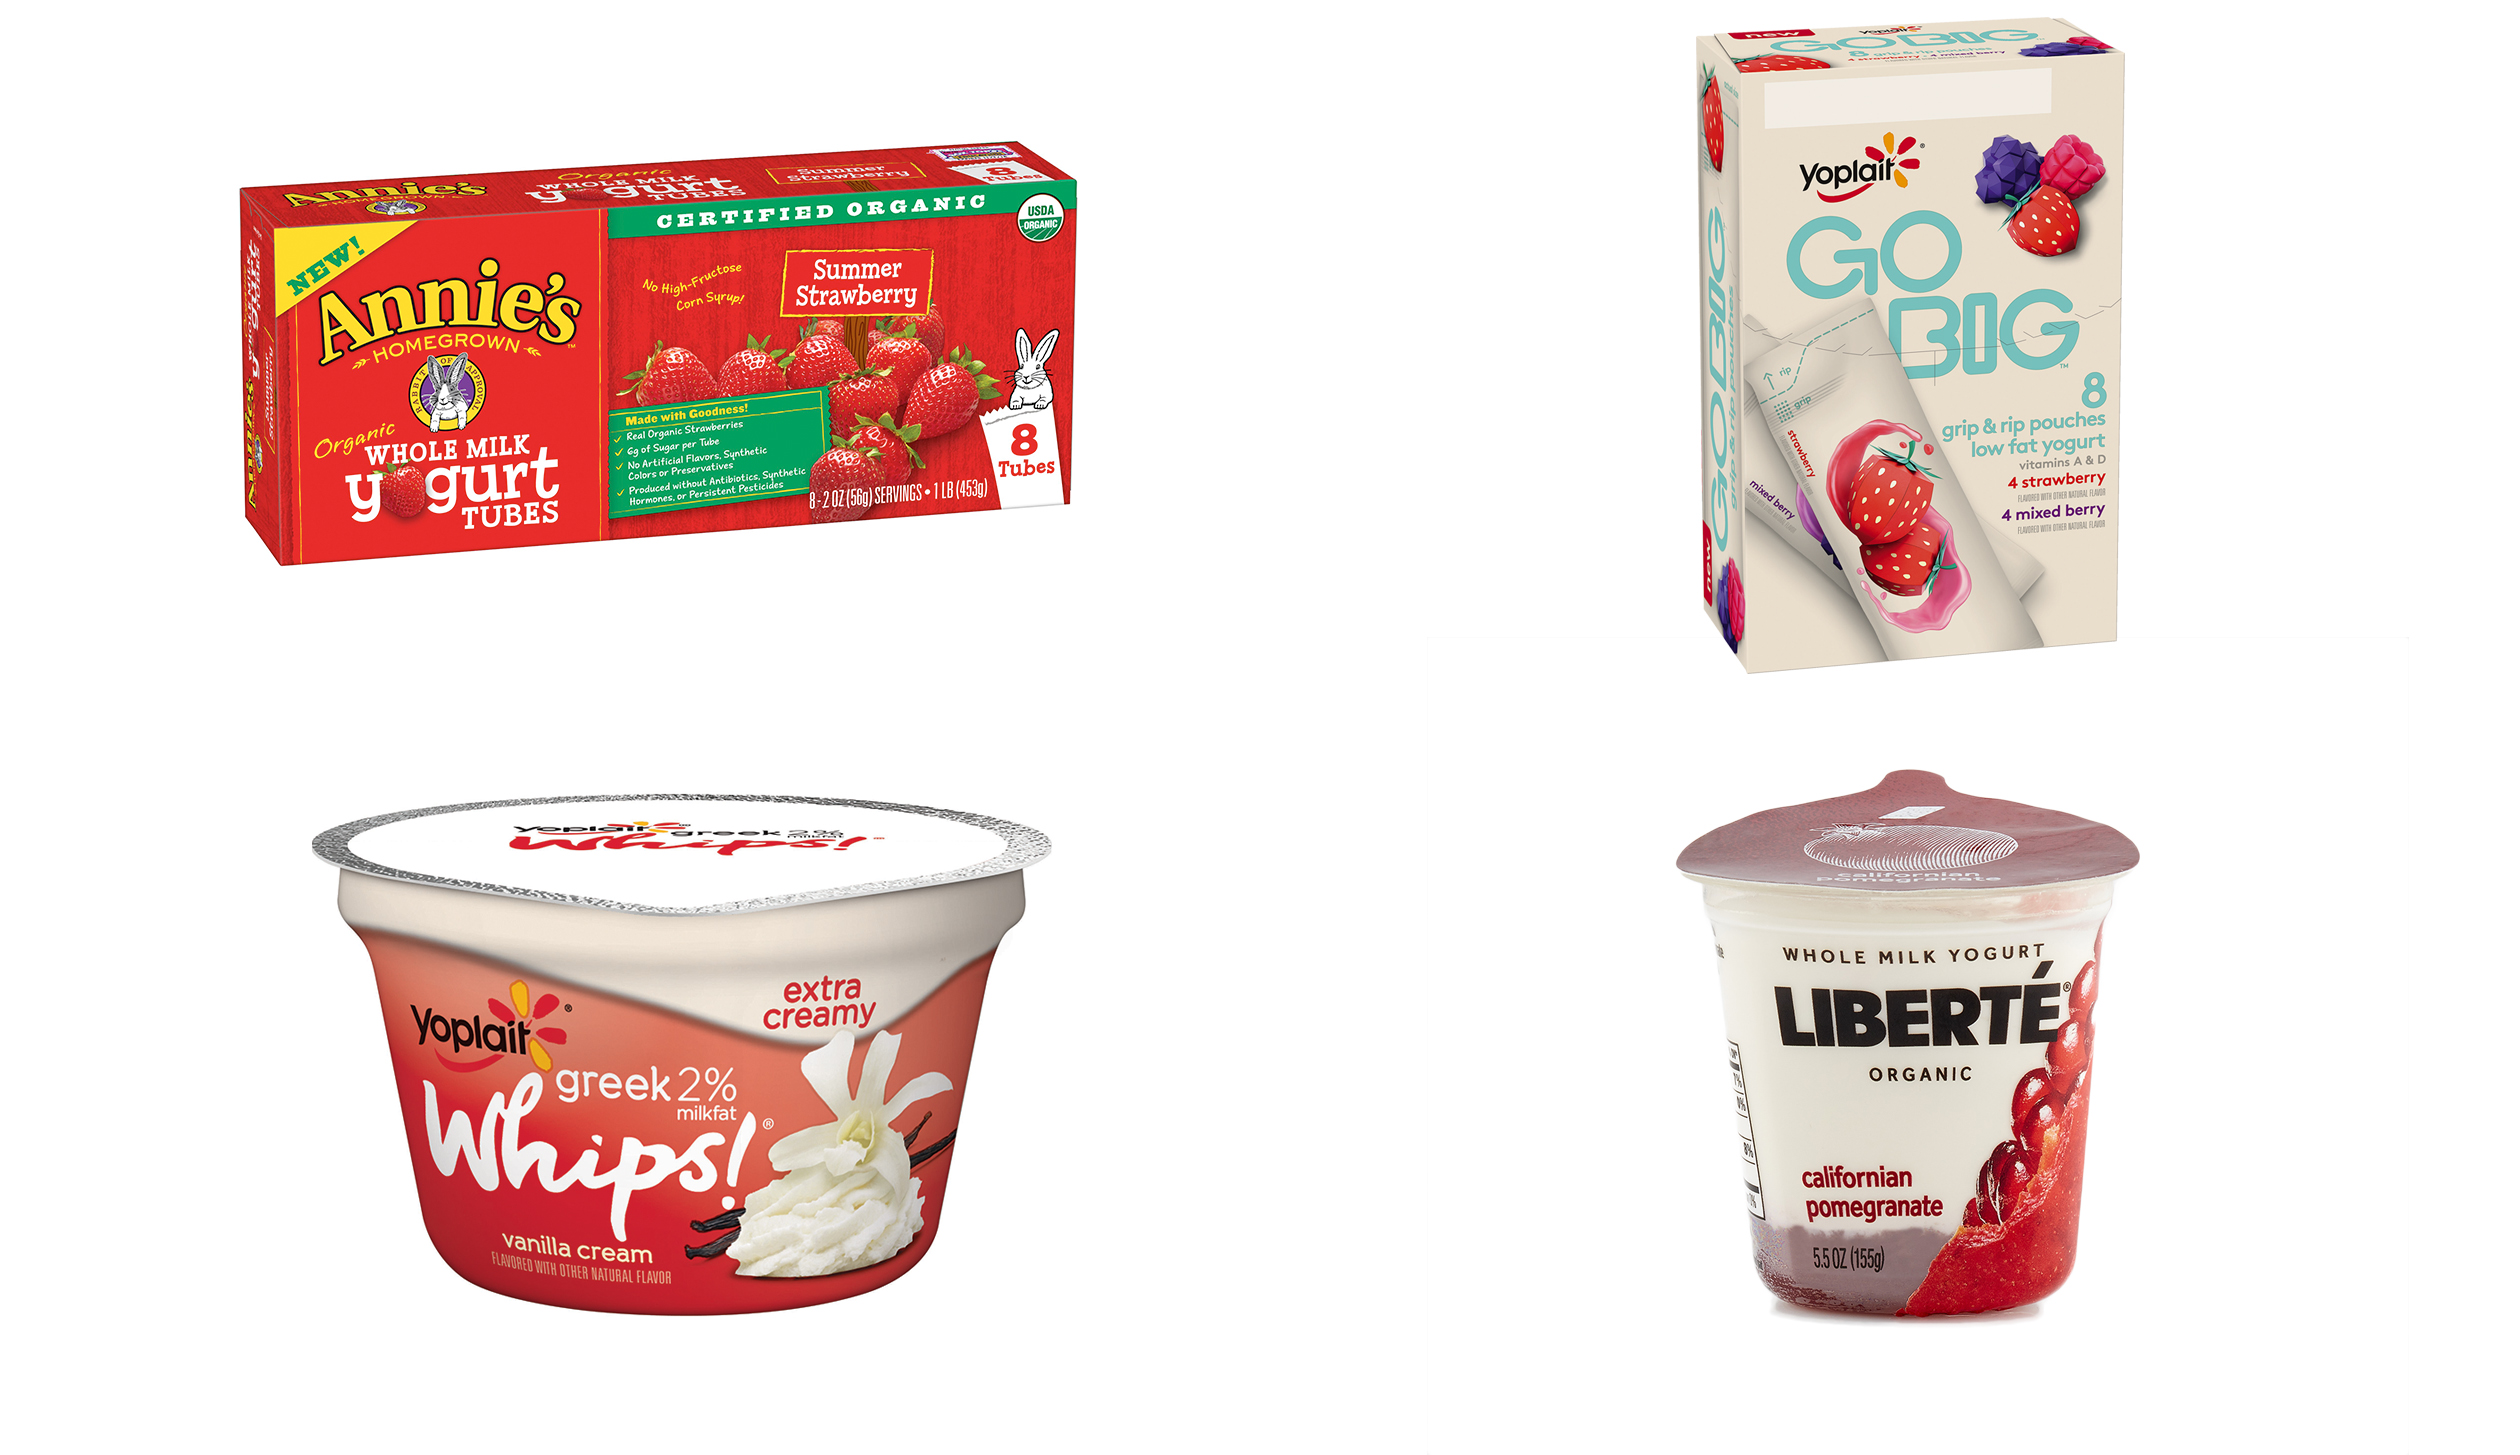 General Mills, with $2.8 billion in annual yogurt sales, wants to renovate the portfolio to better compete in the yogurt category.